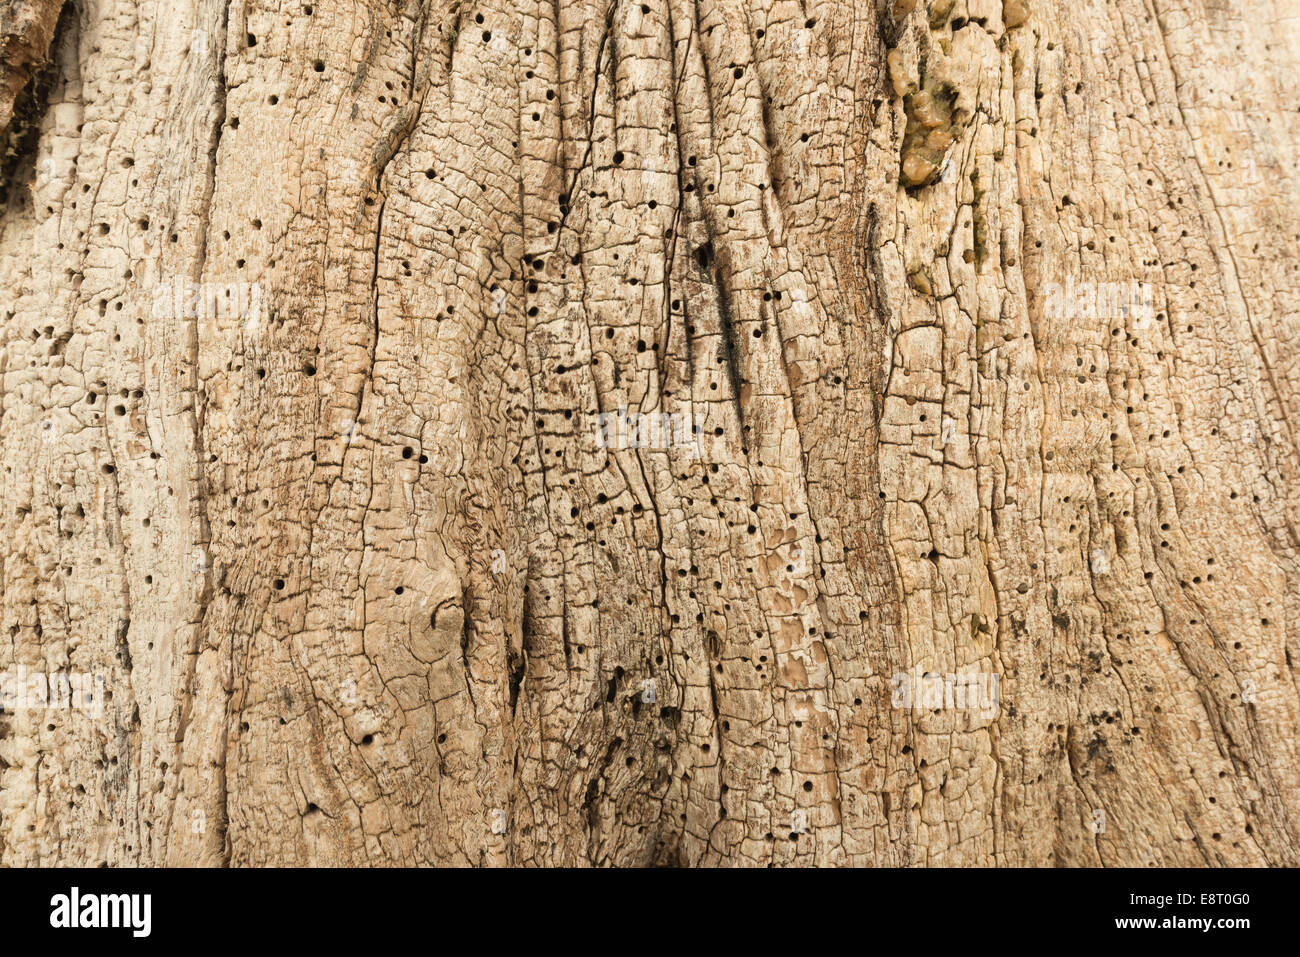 interesting patterns swirls lines and texture in trunk of mature horse chestnut tree showing insect woodworm exit - Stock Image